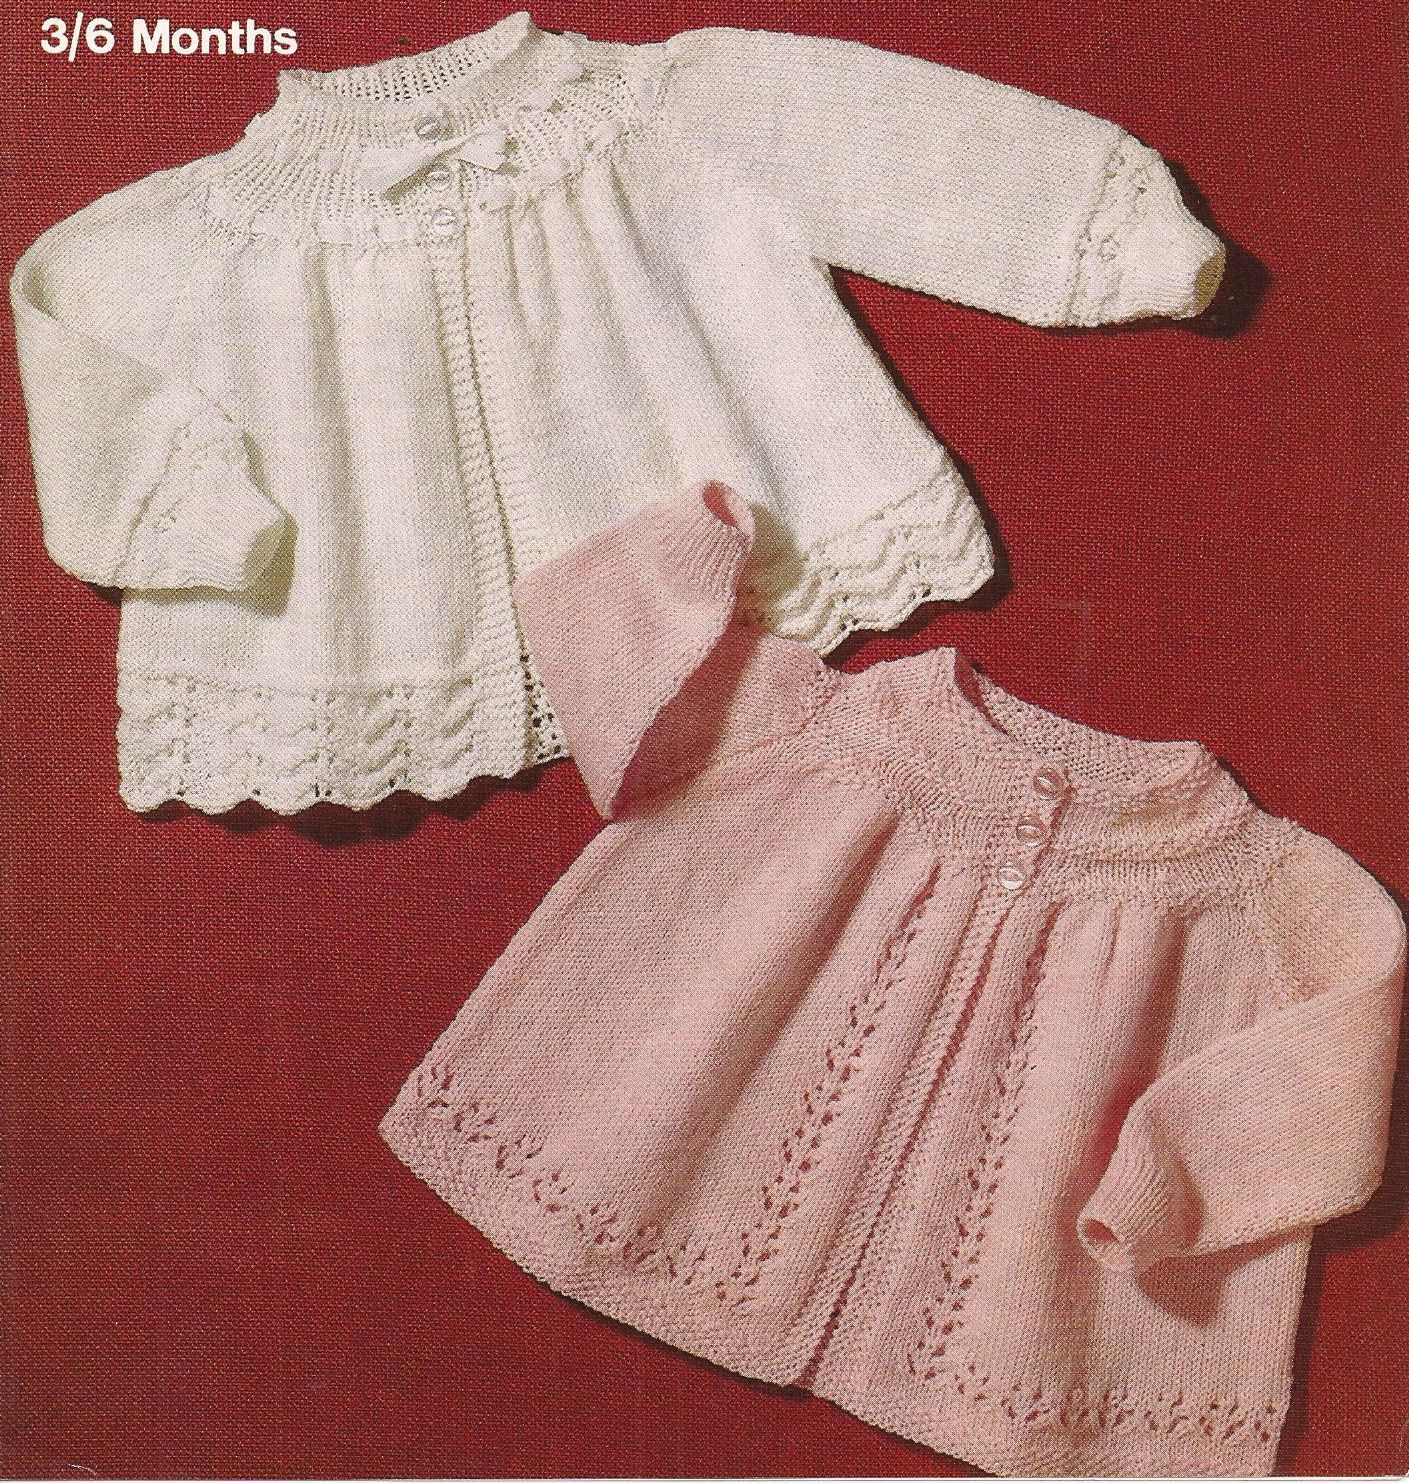 Knitting Pattern Cardigan Jacket : Knitted Baby Matinee Coat Jacket Cardigan Knitting Pattern PDF (SD52) baby ...